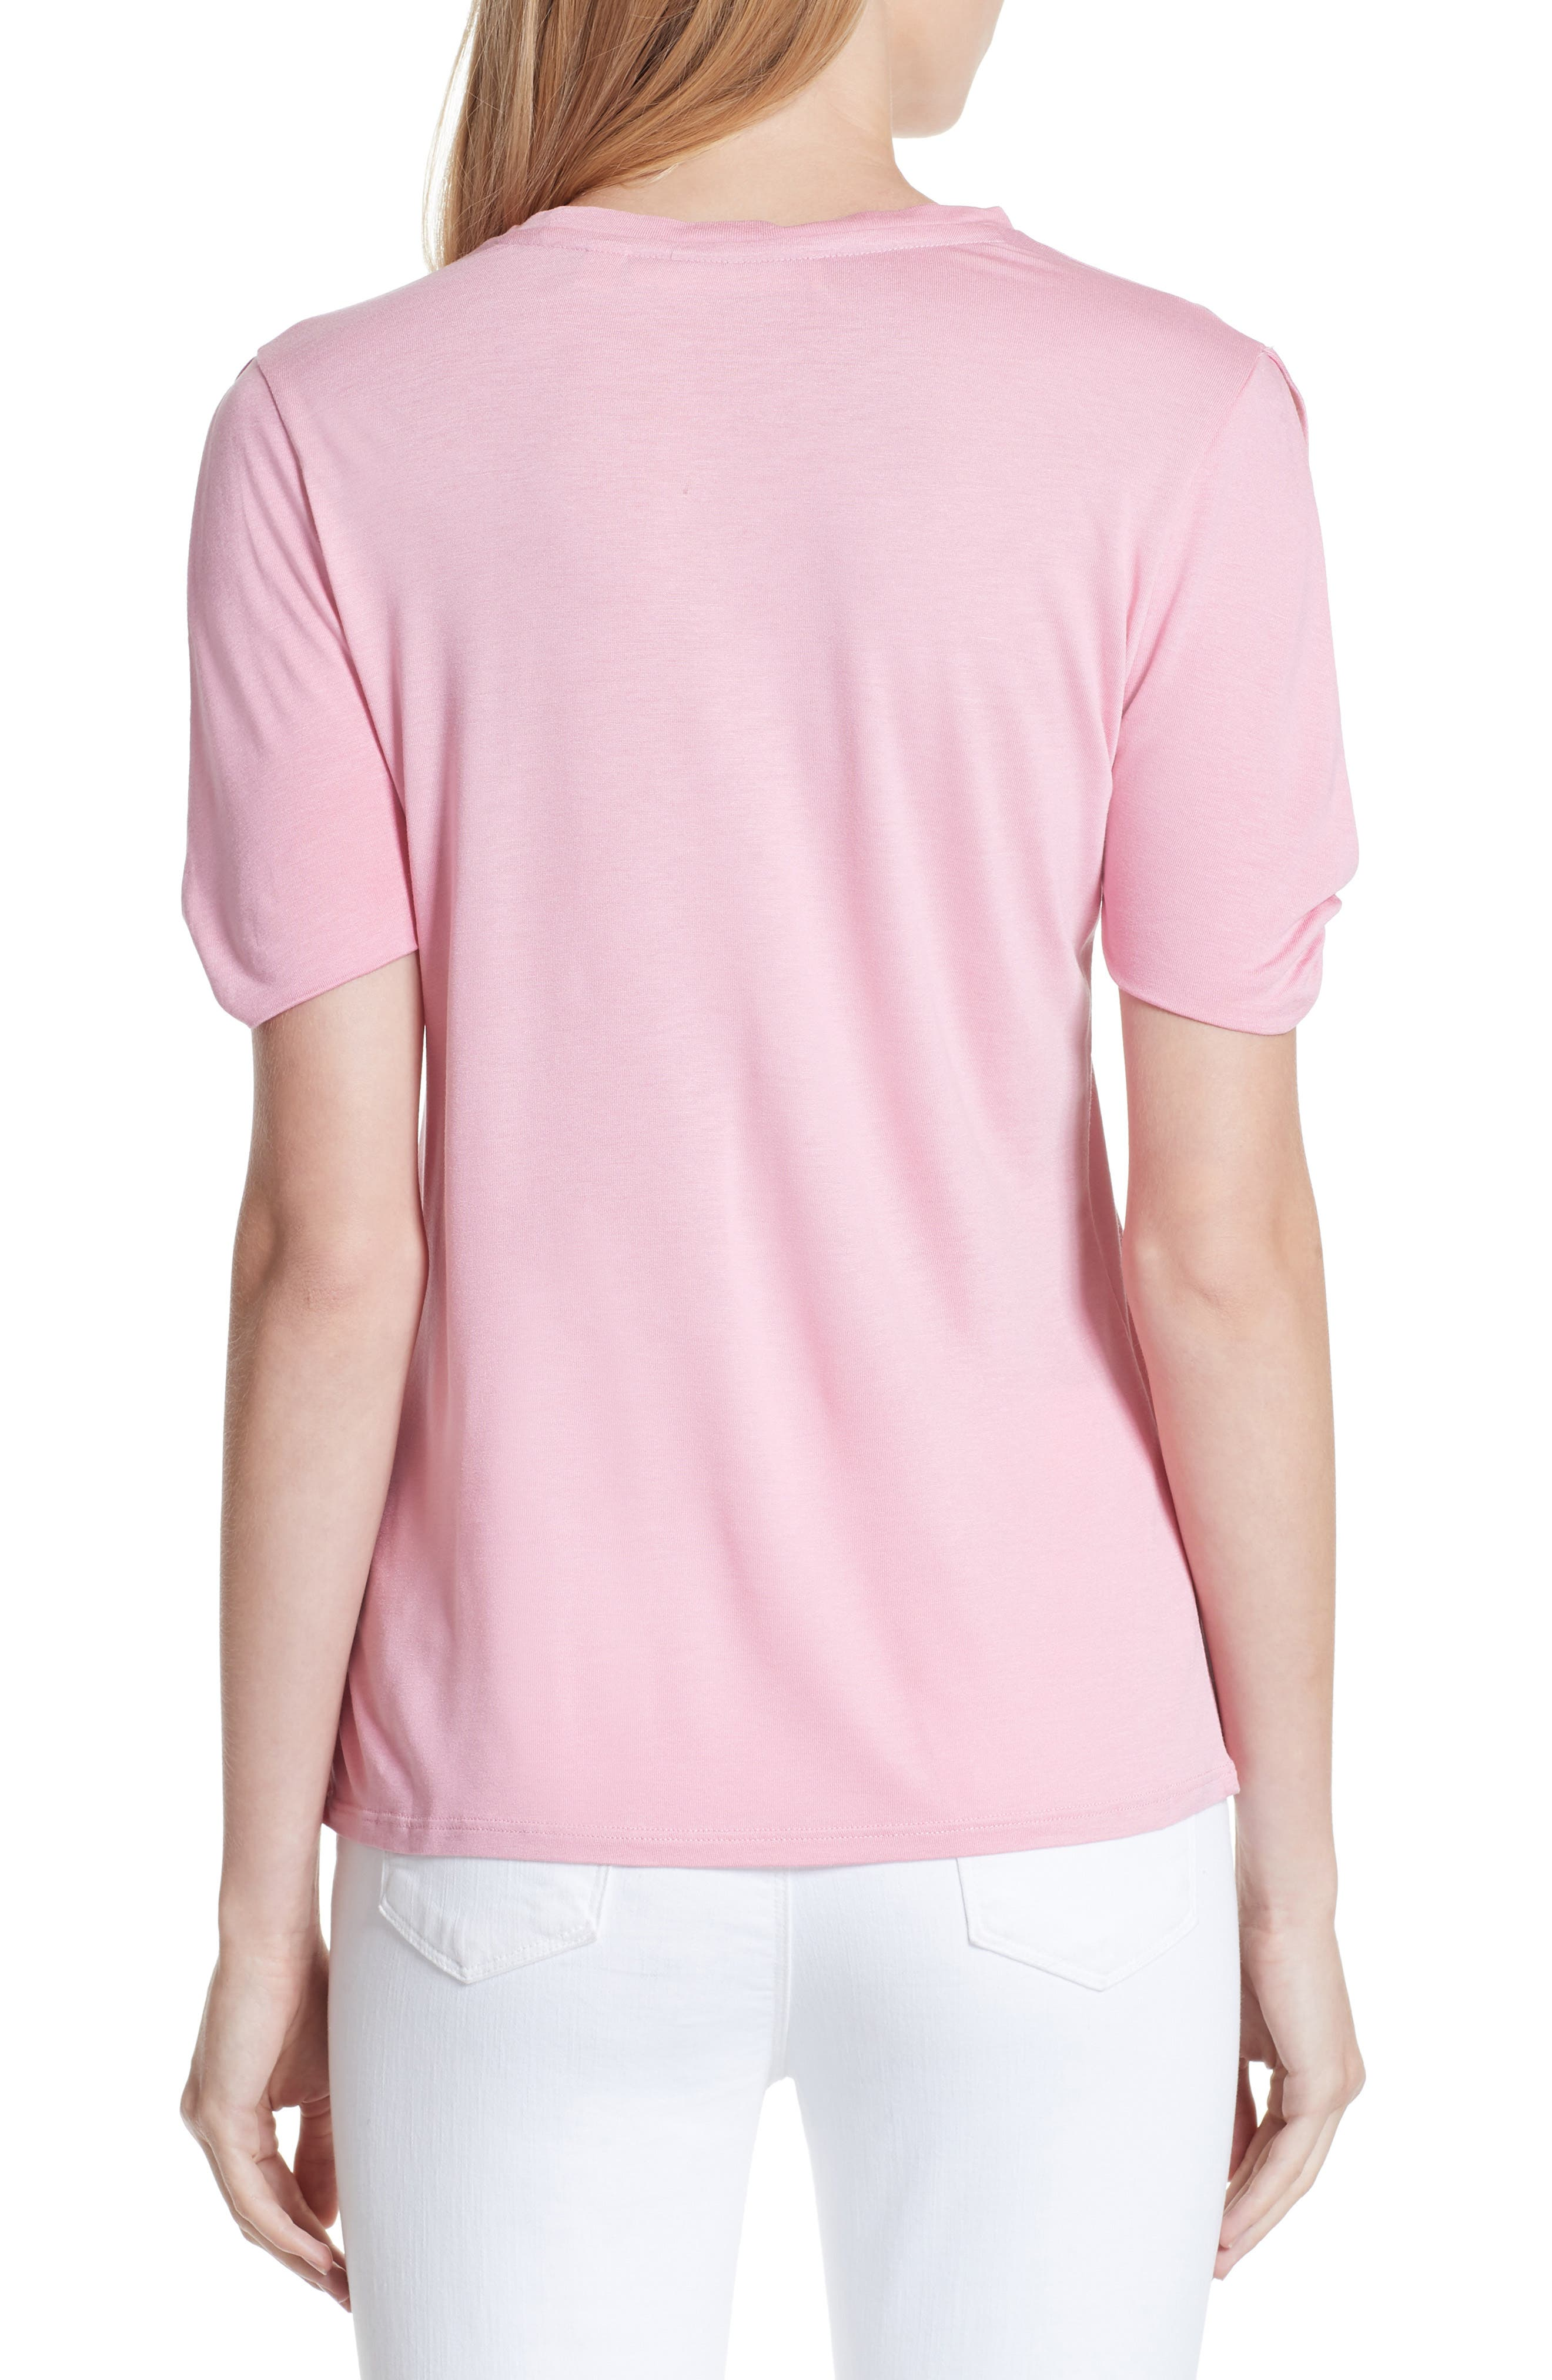 Narva Colour by Numbers Twist Cuff Shirt,                             Alternate thumbnail 2, color,                             Pink